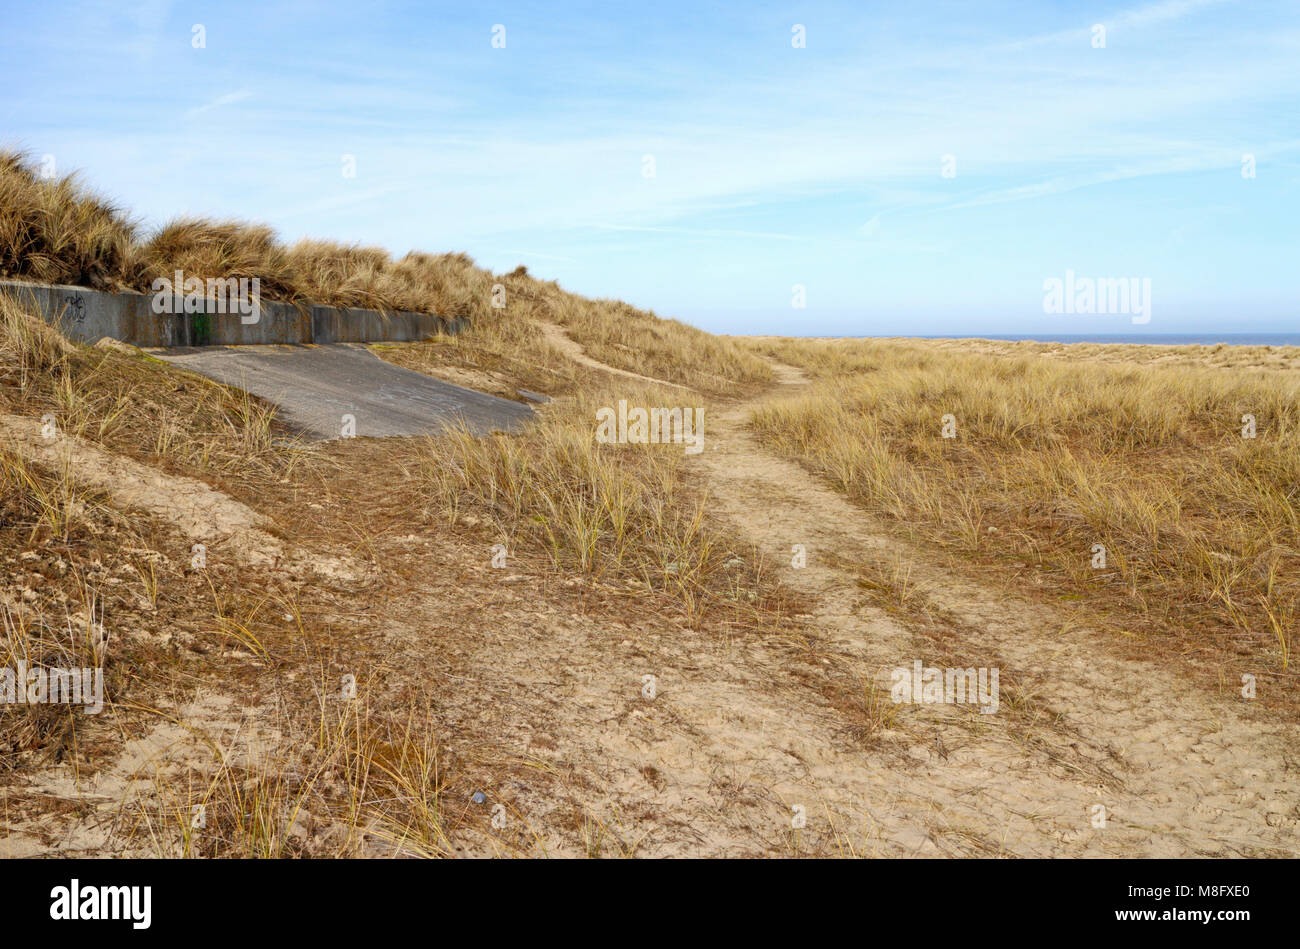 A view of secondary dunes with old sea wall protection on the East Norfolk coast at Wintertron-on-Sea, Norfolk. - Stock Image